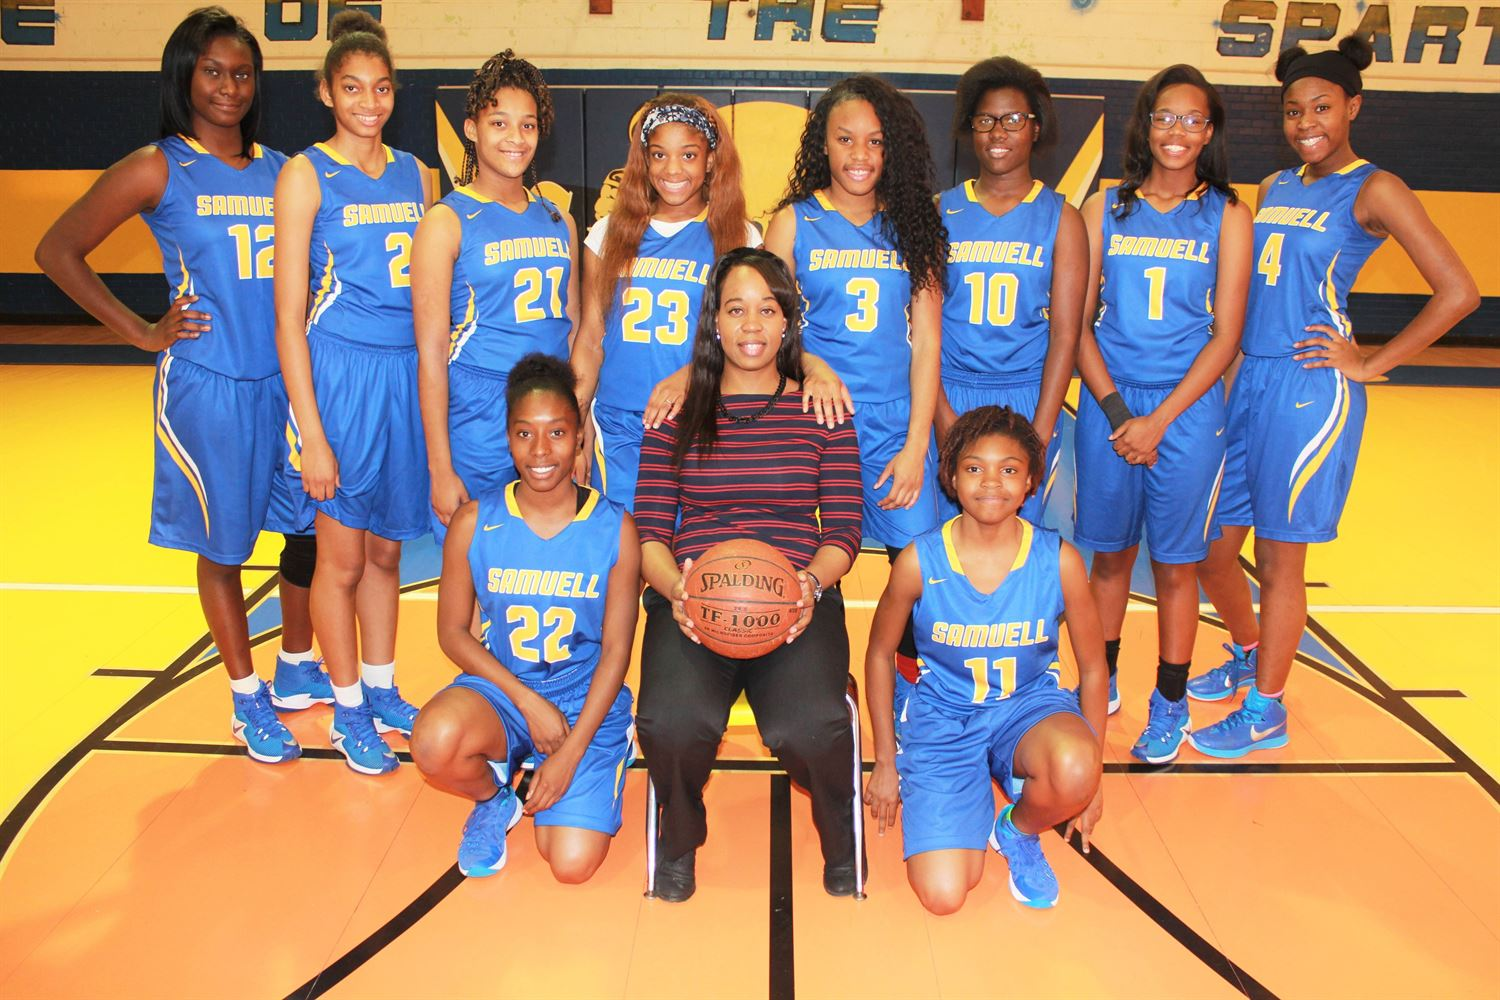 Samuell High School - Girls' Varsity Basketball